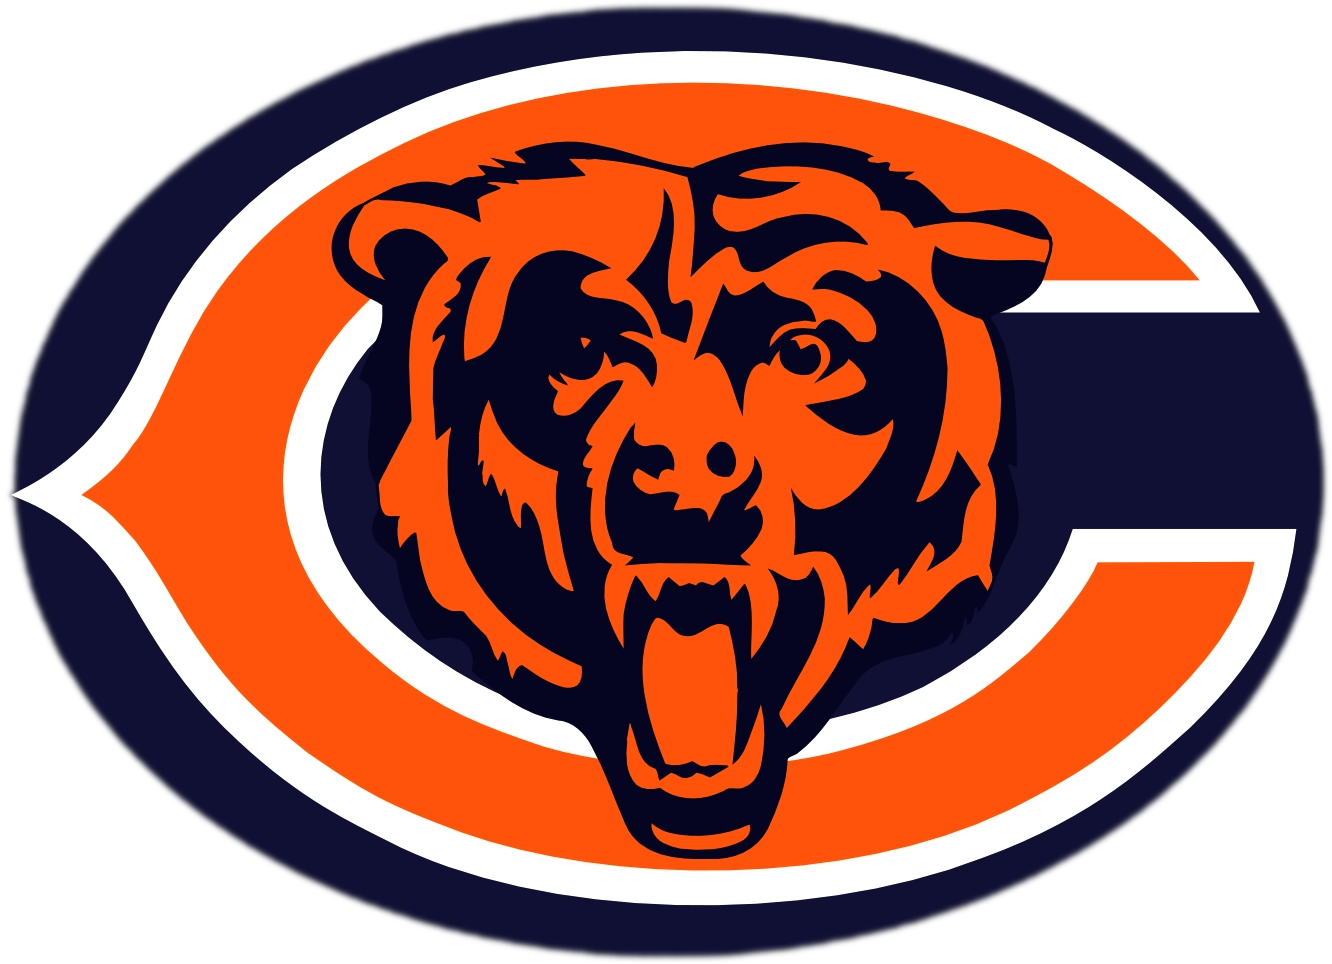 Bear down clipart graphic library stock Free Chicago Bears Logo, Download Free Clip Art, Free Clip Art on ... graphic library stock